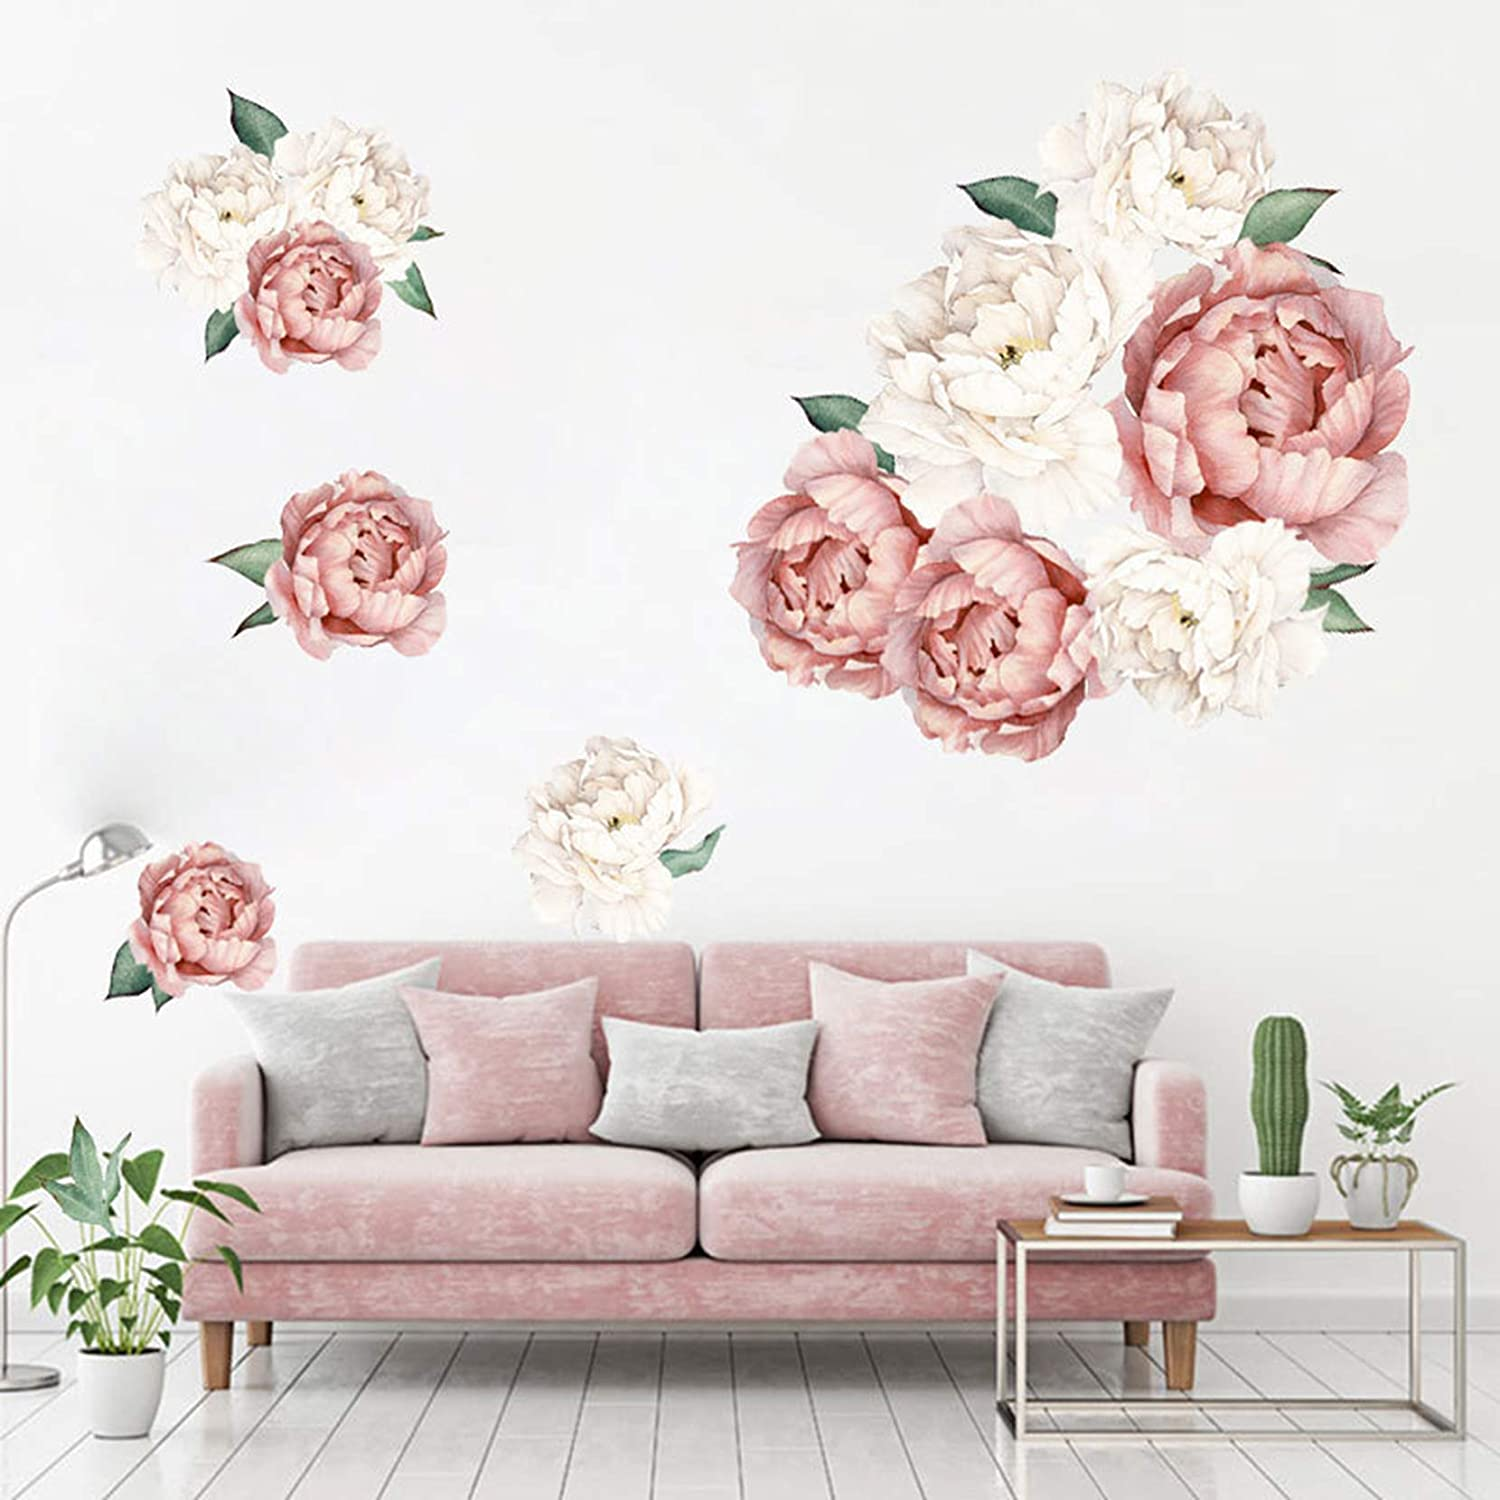 MOLANCIA Floral Wall Decals, Peony Flowers Wall Stickers, Peony Rose Wall Posters, Peony Art Murals, Garden Blossom Flowers Removable Wallpaper for Living Room Girls Room Kitchen Bedroom (Pink 3)